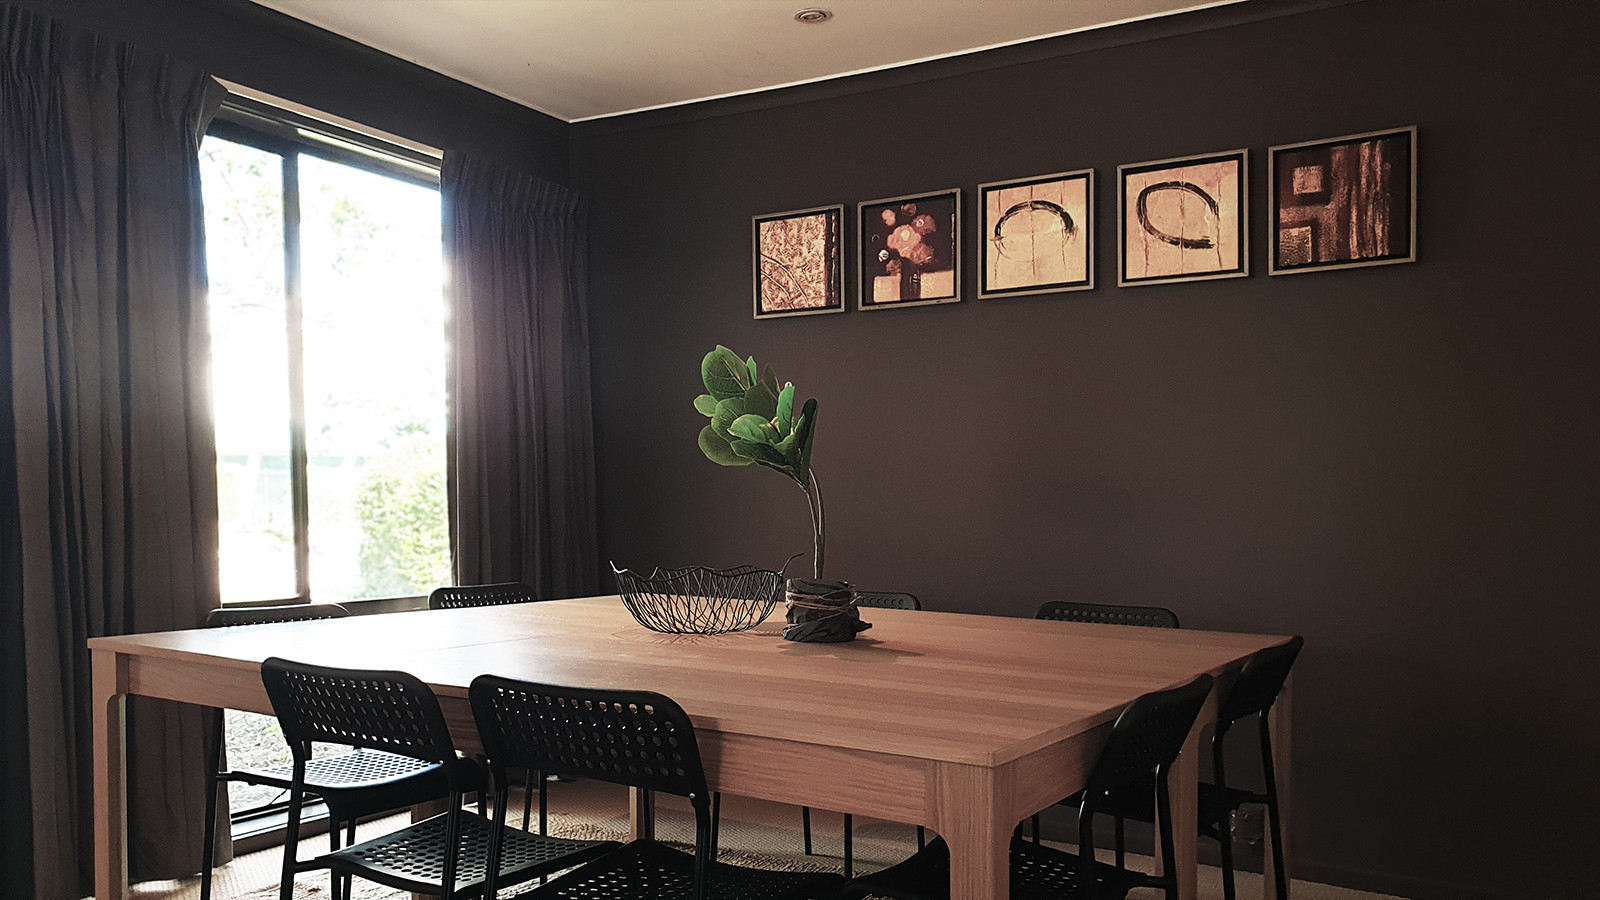 LEARNING ROOM AFTER